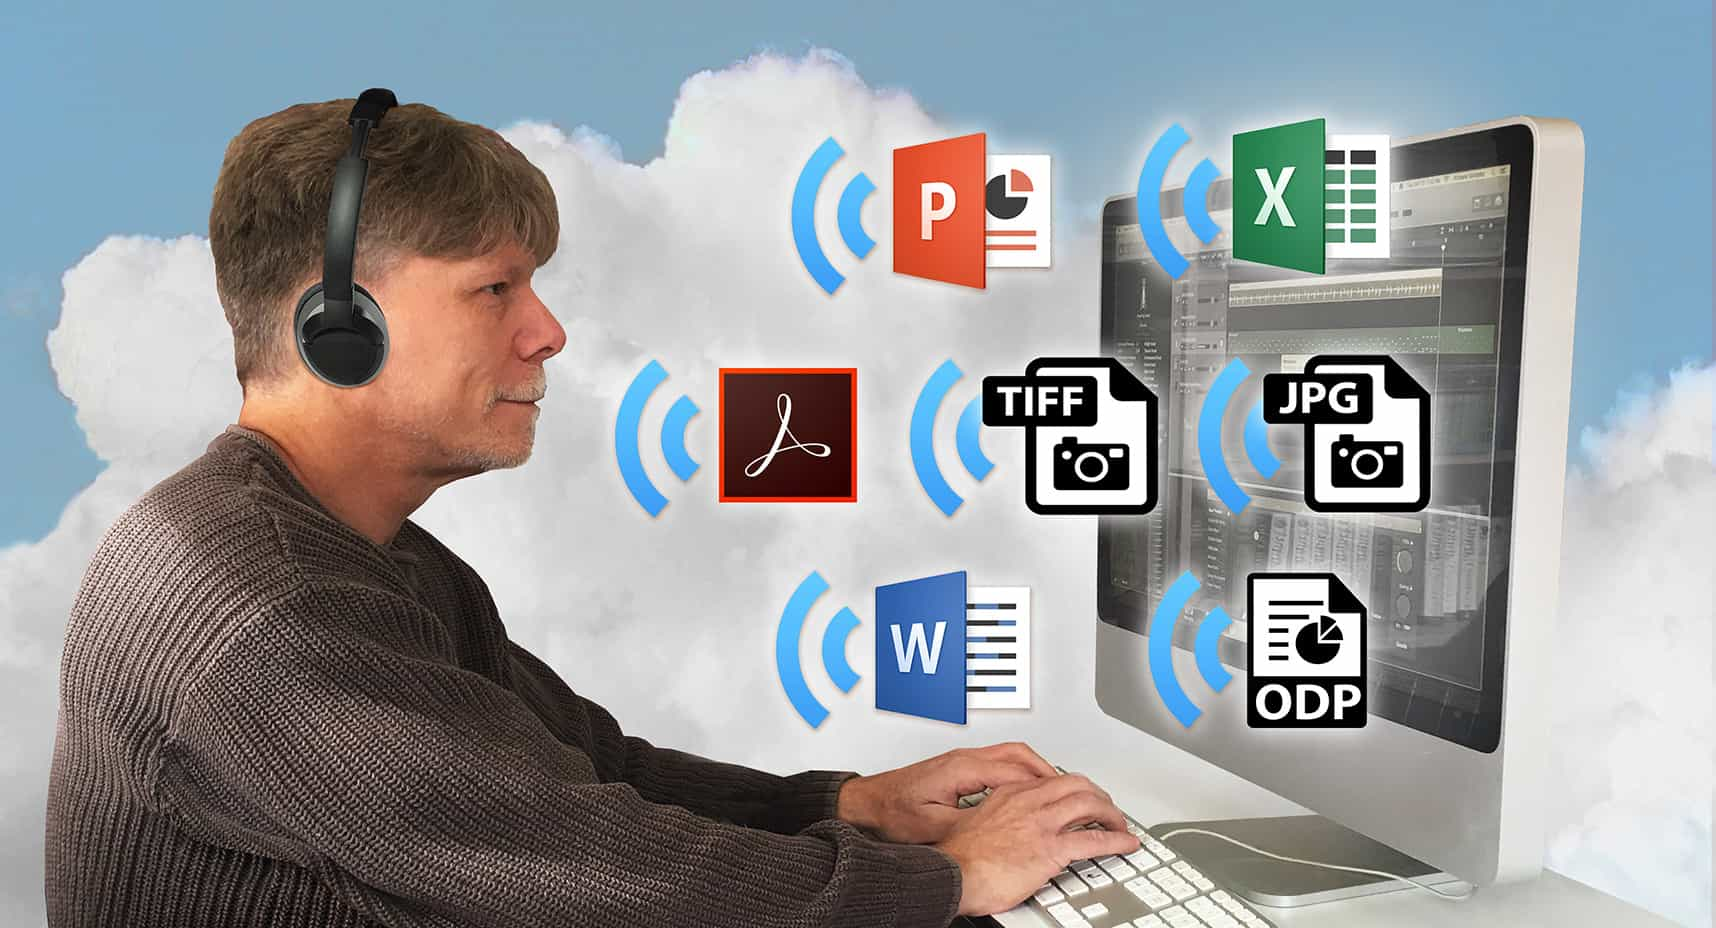 Photo montage of man with headphones at a desktop computer. Document icons with audio symbols flow from monitor. Clouds in background.